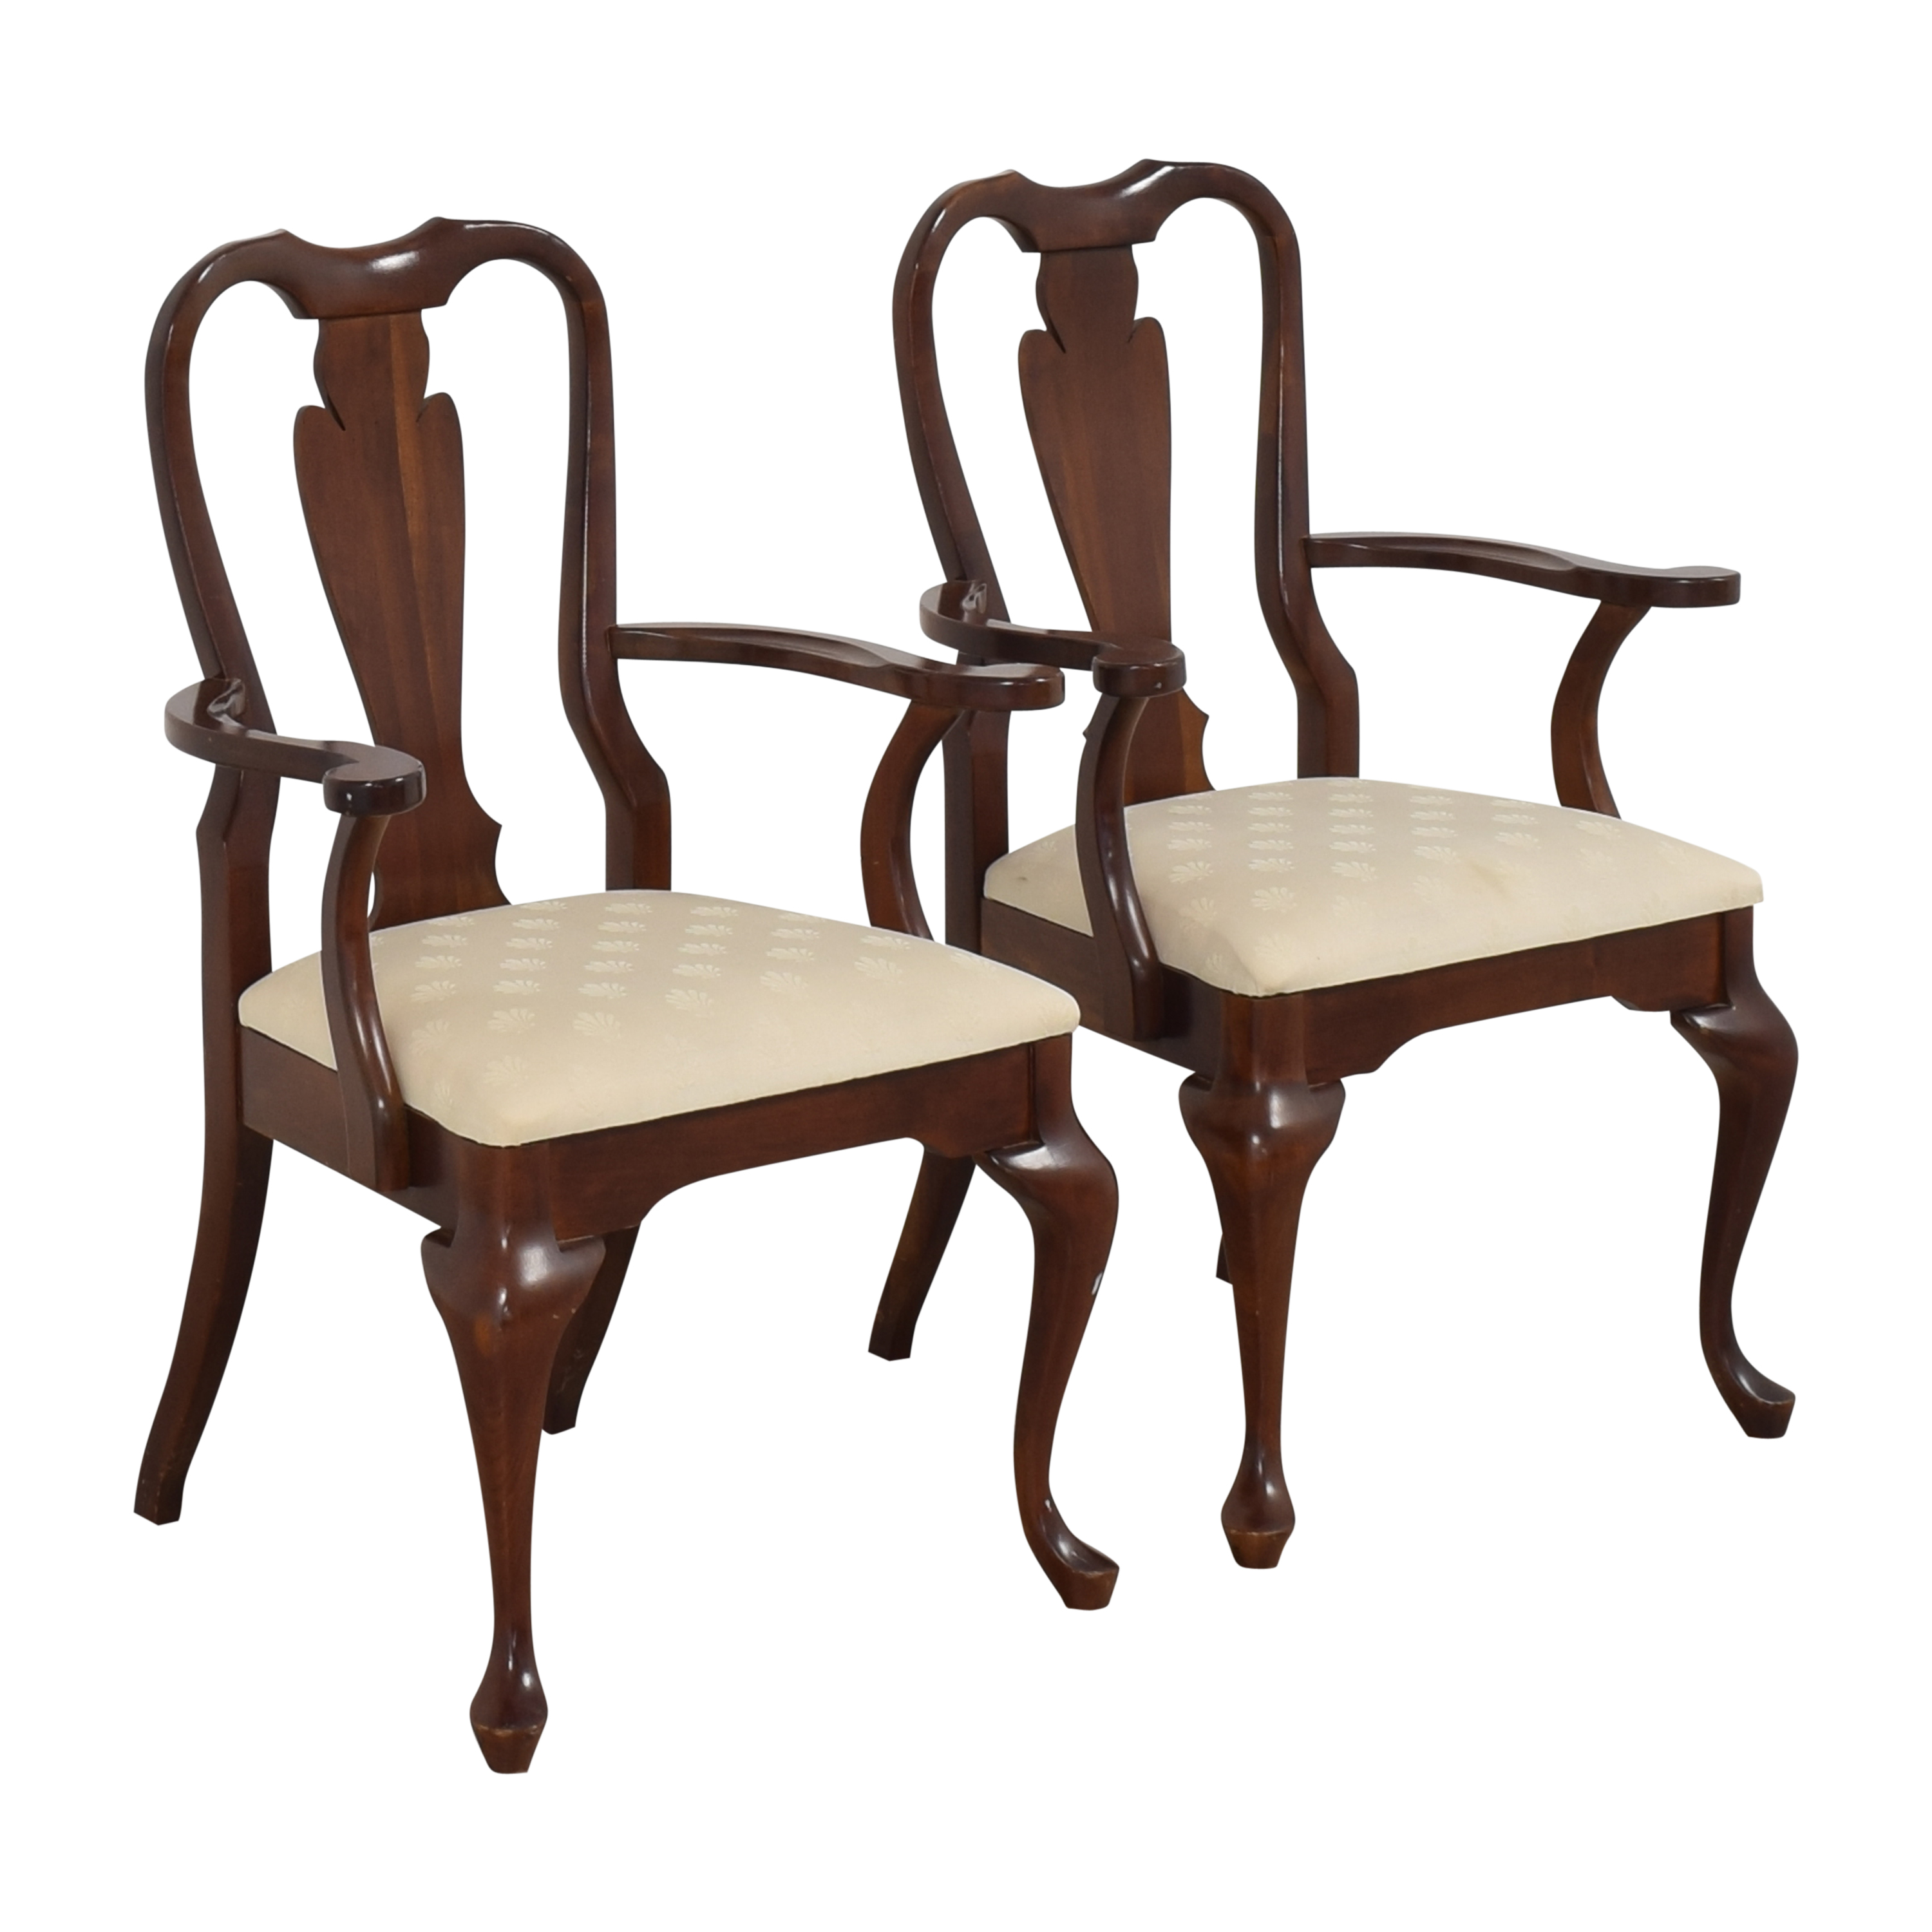 Cresent Furniture Cresent Furniture Queen Anne Dining Arm Chairs Chairs